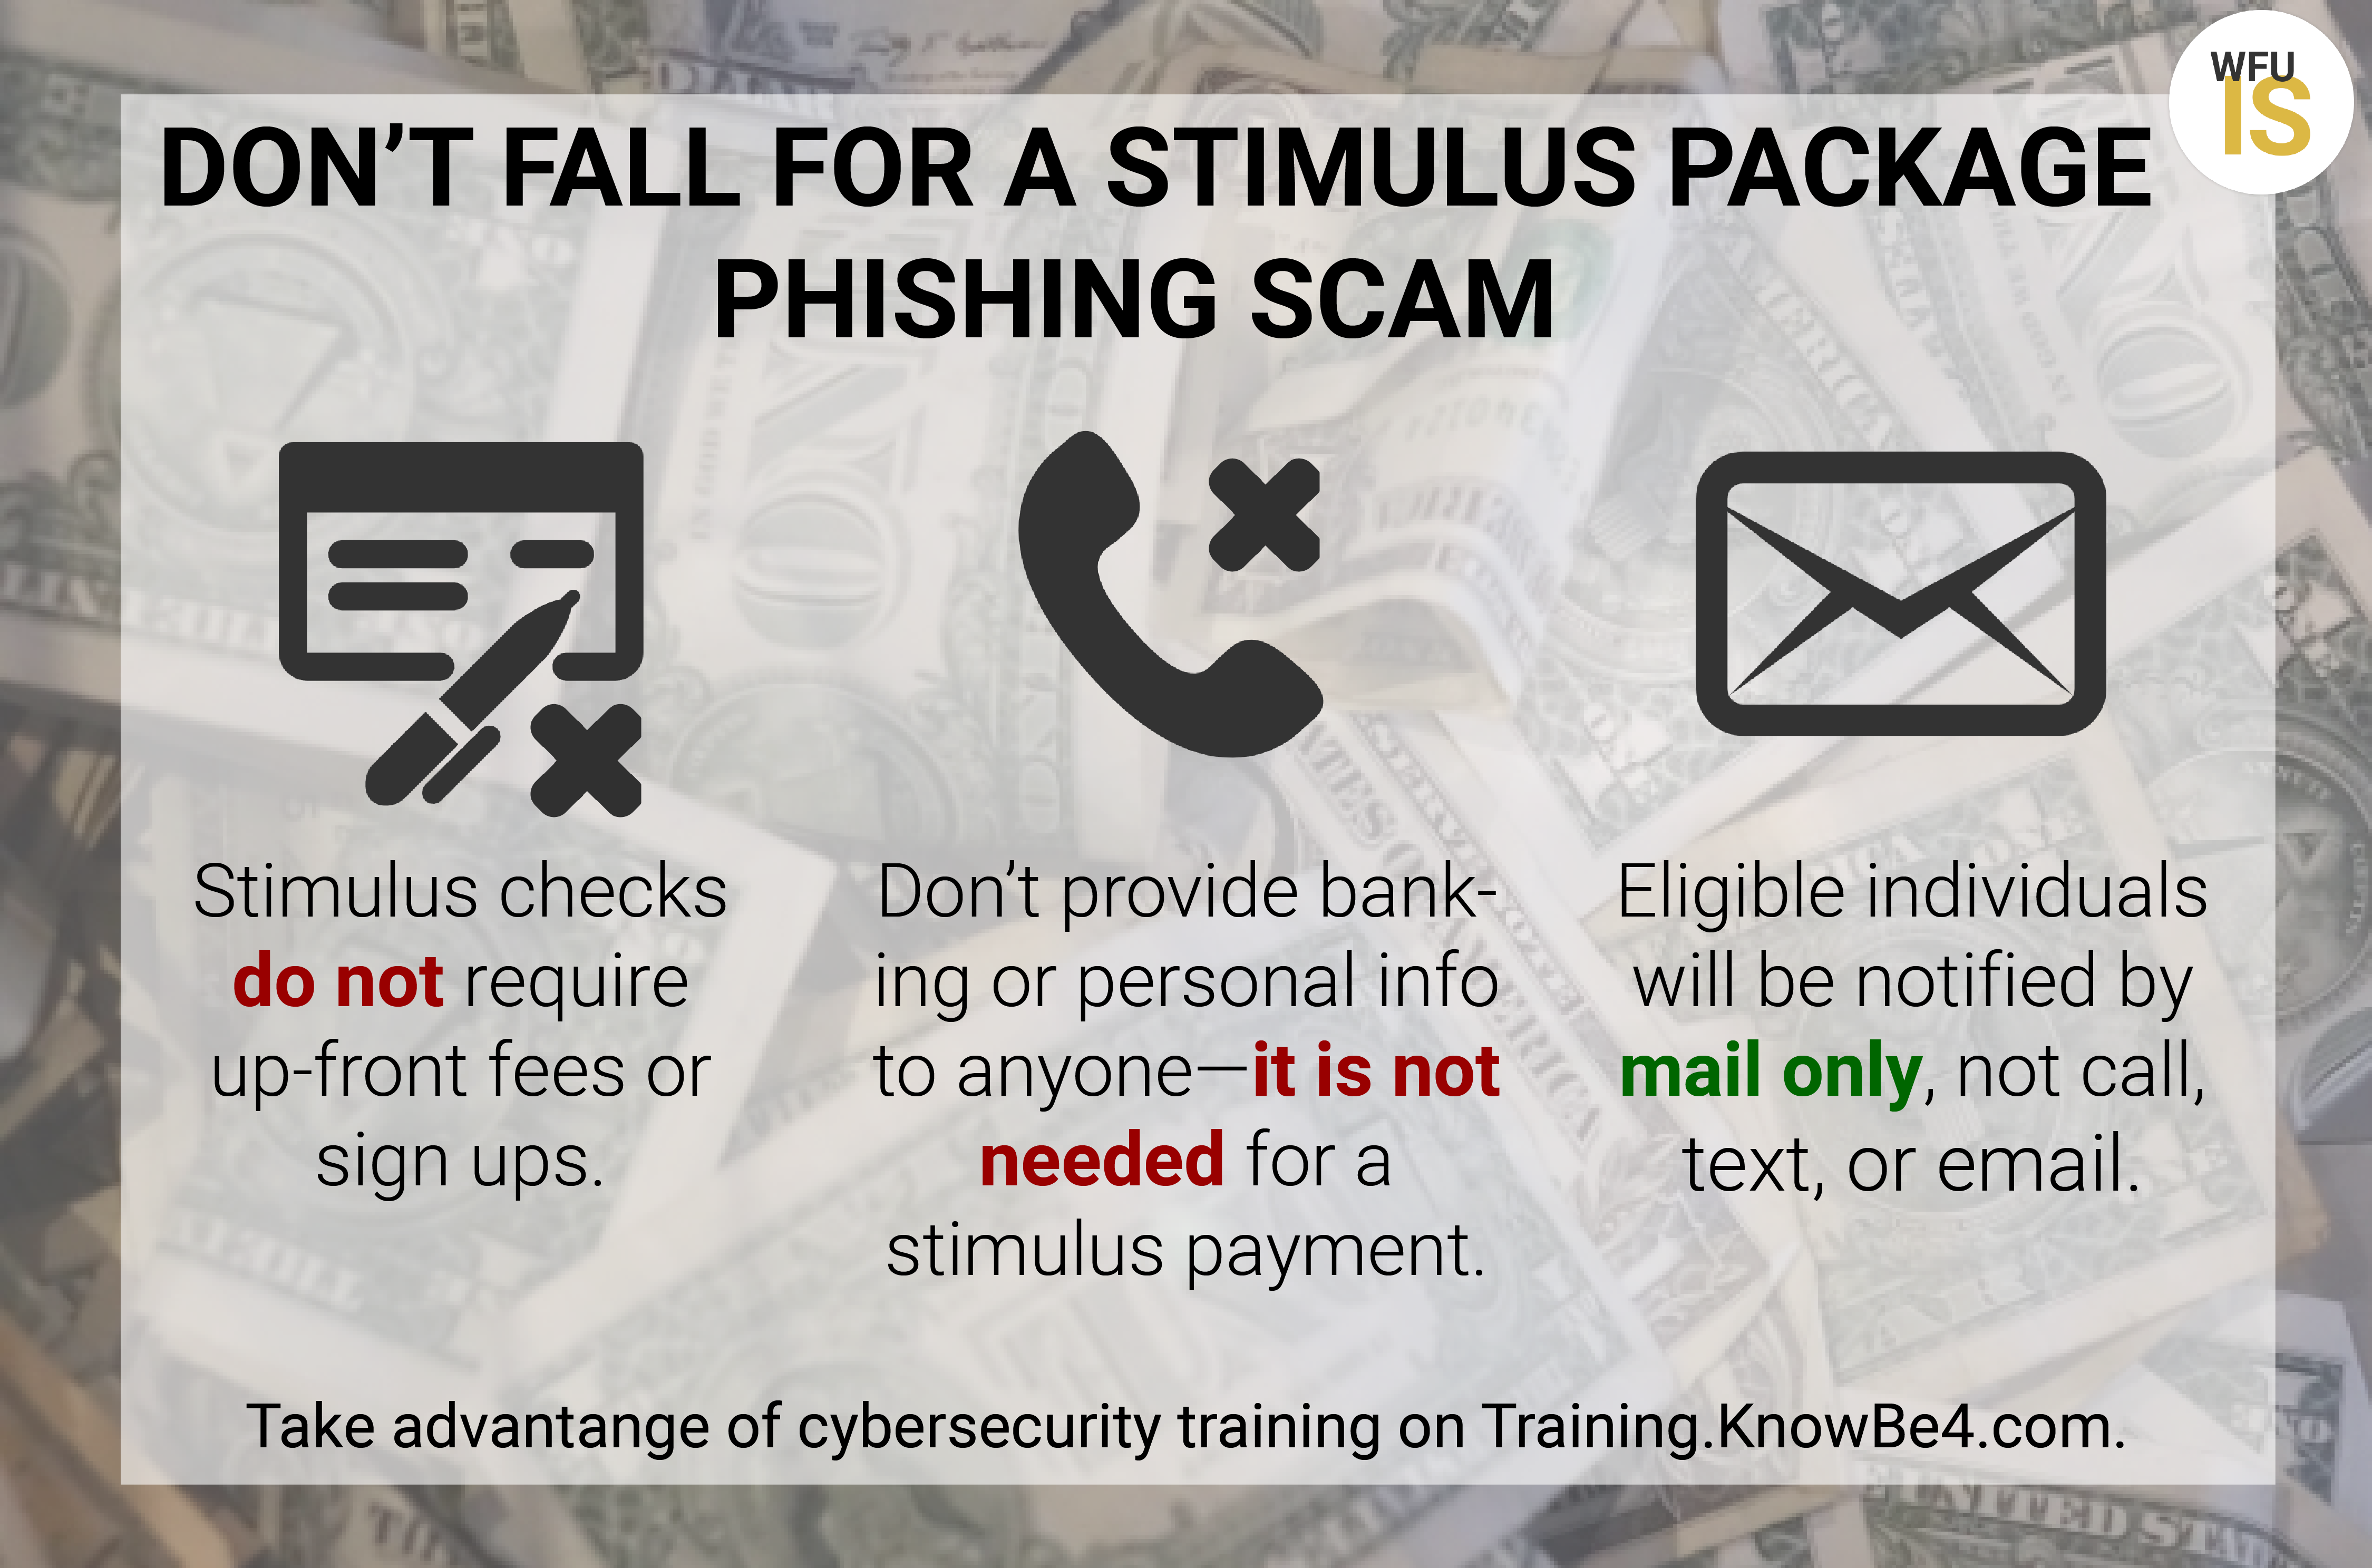 Graphic illustration of text describing how to protect against stimulus package phishing scam